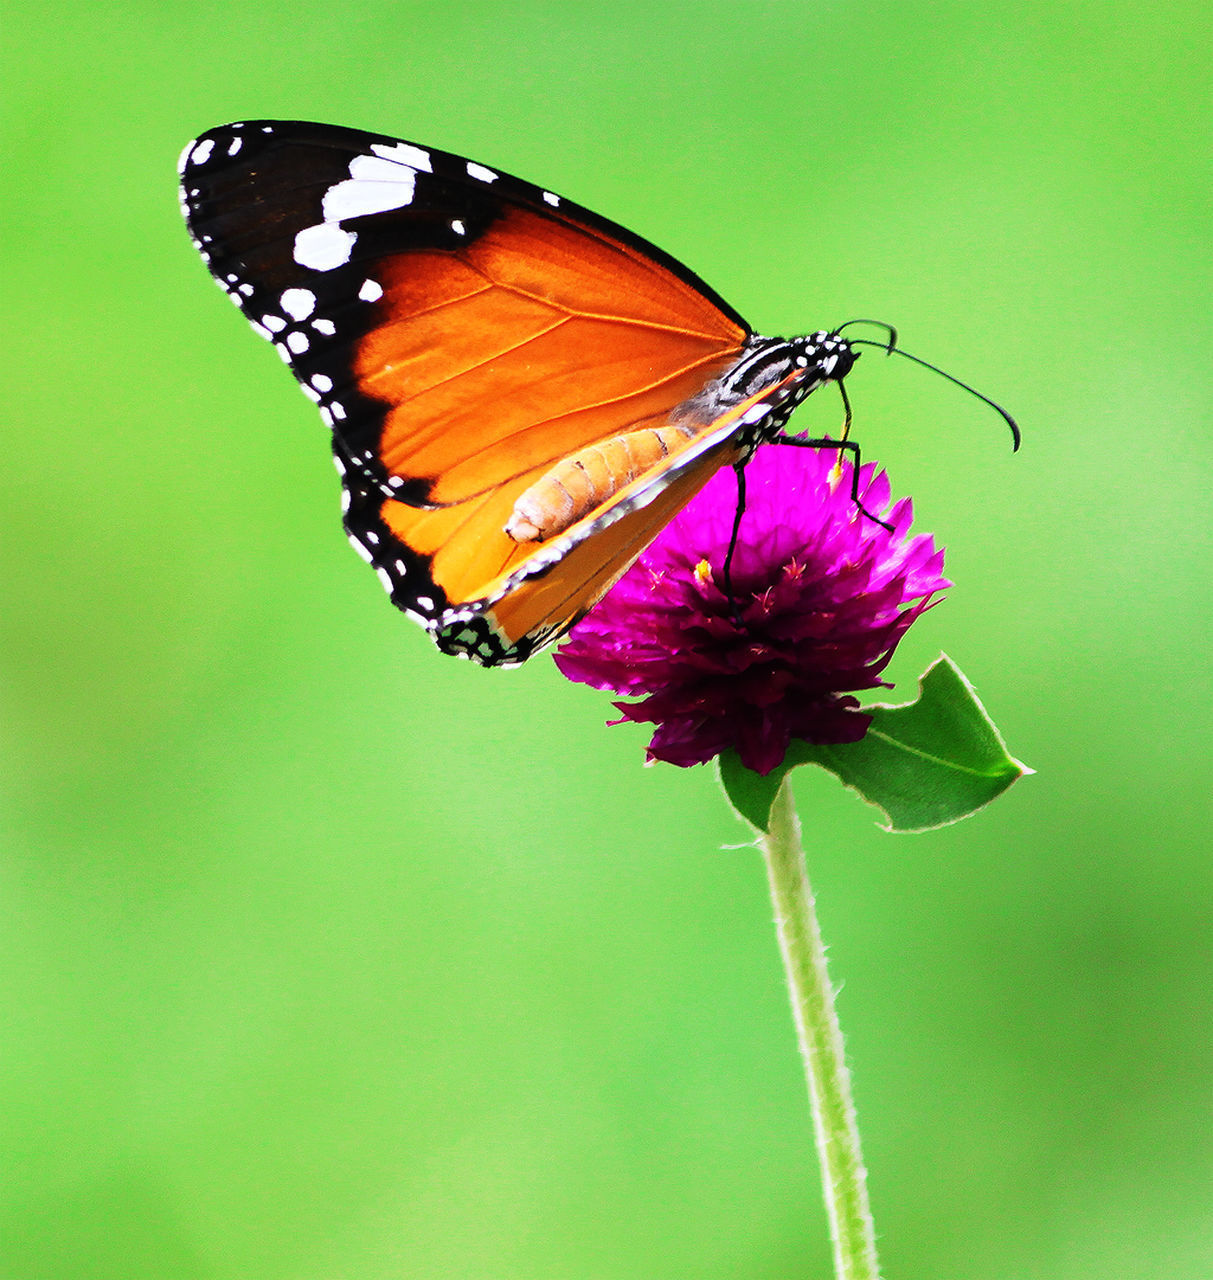 insect, butterfly - insect, animal wildlife, animal wing, flower, beauty in nature, animal themes, invertebrate, animal, one animal, animals in the wild, plant, flowering plant, vulnerability, fragility, close-up, nature, petal, freshness, growth, no people, flower head, pollination, purple, butterfly, outdoors